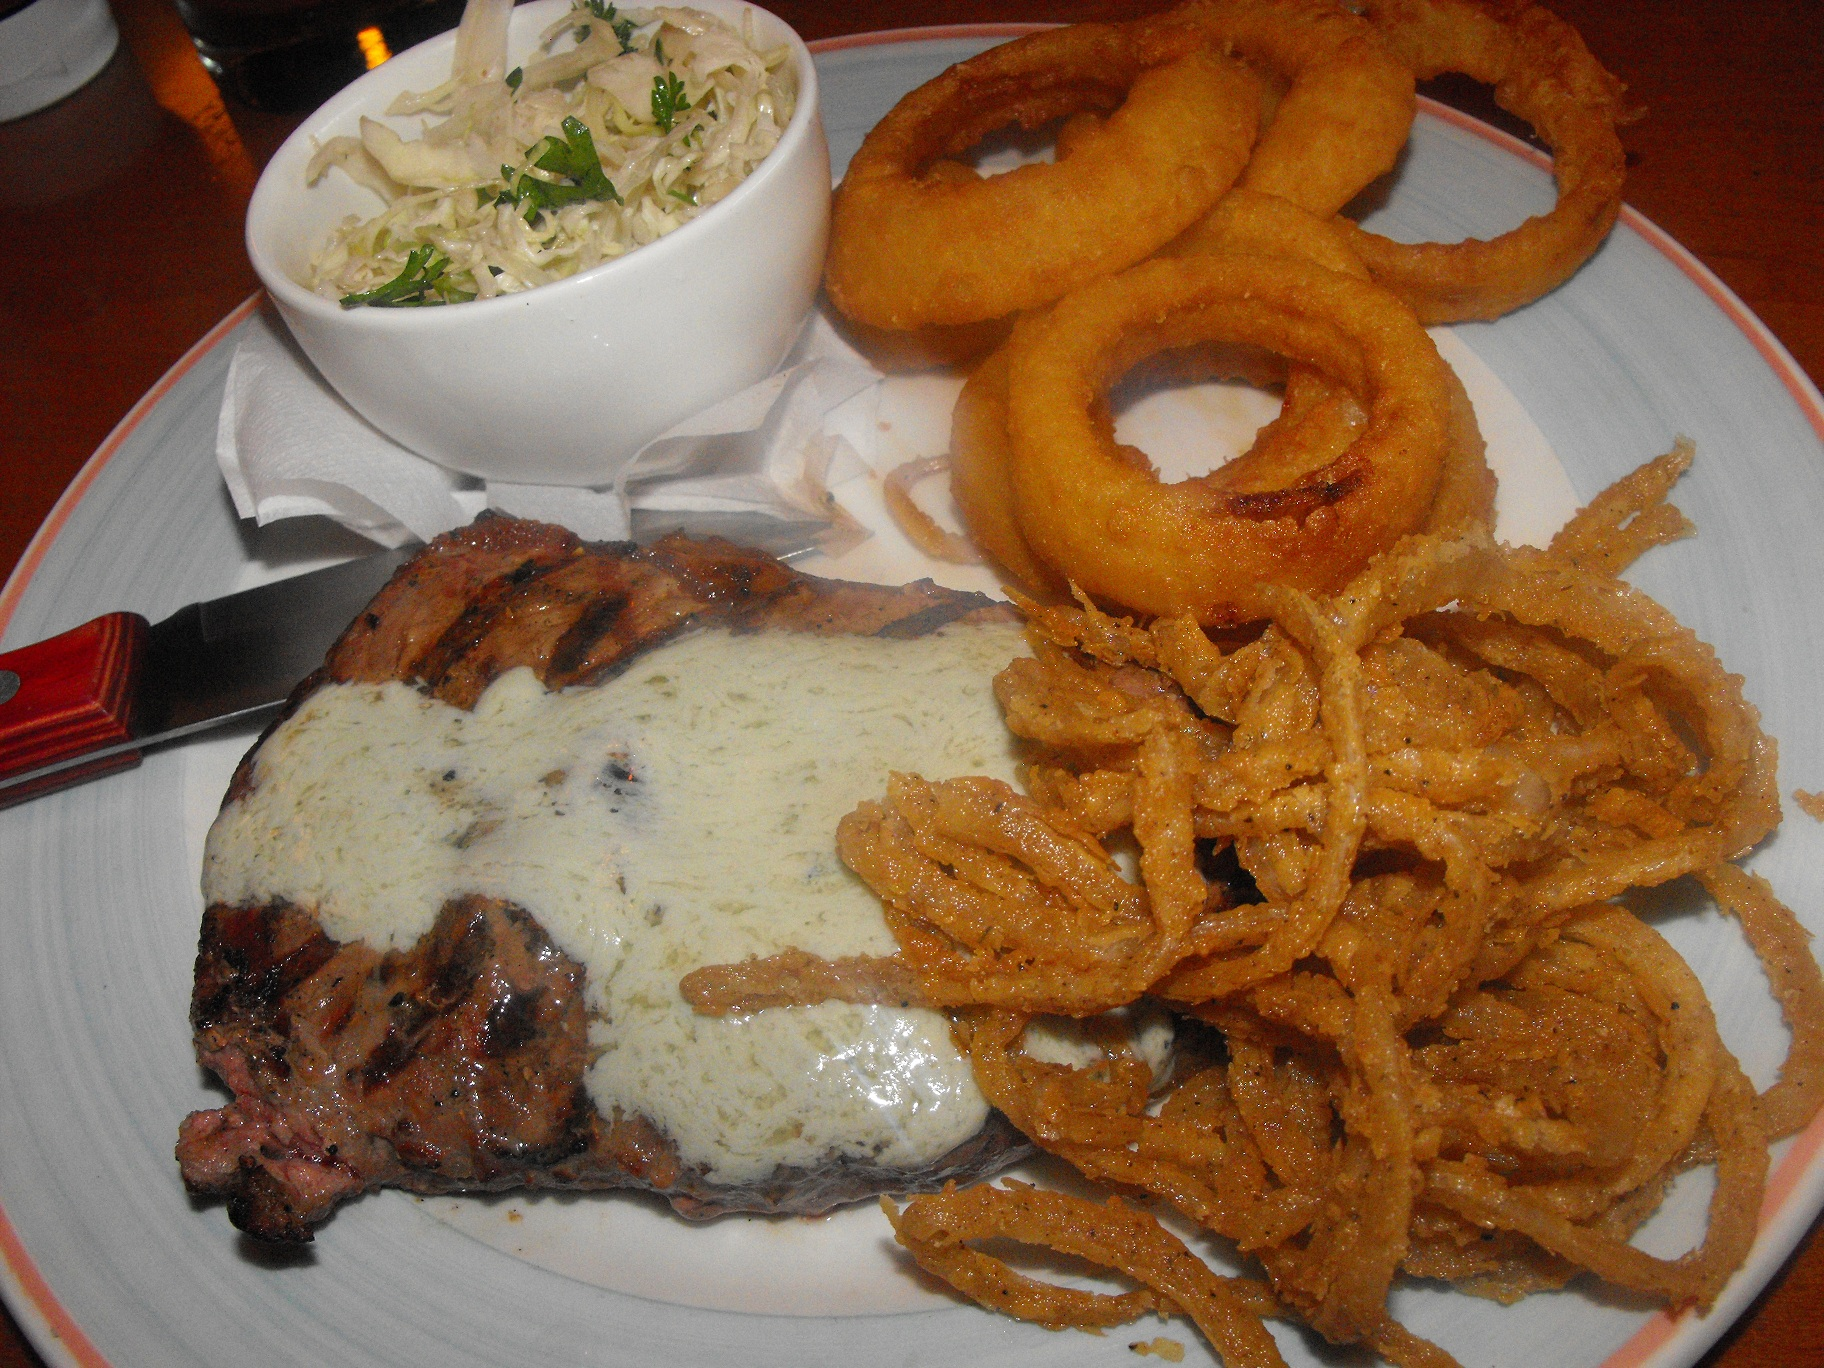 http://foodloader.net/cutie_2011-08-19_Blue_Cheese_Butter_Strip_Loin_with_Onion_Rings_and.jpg